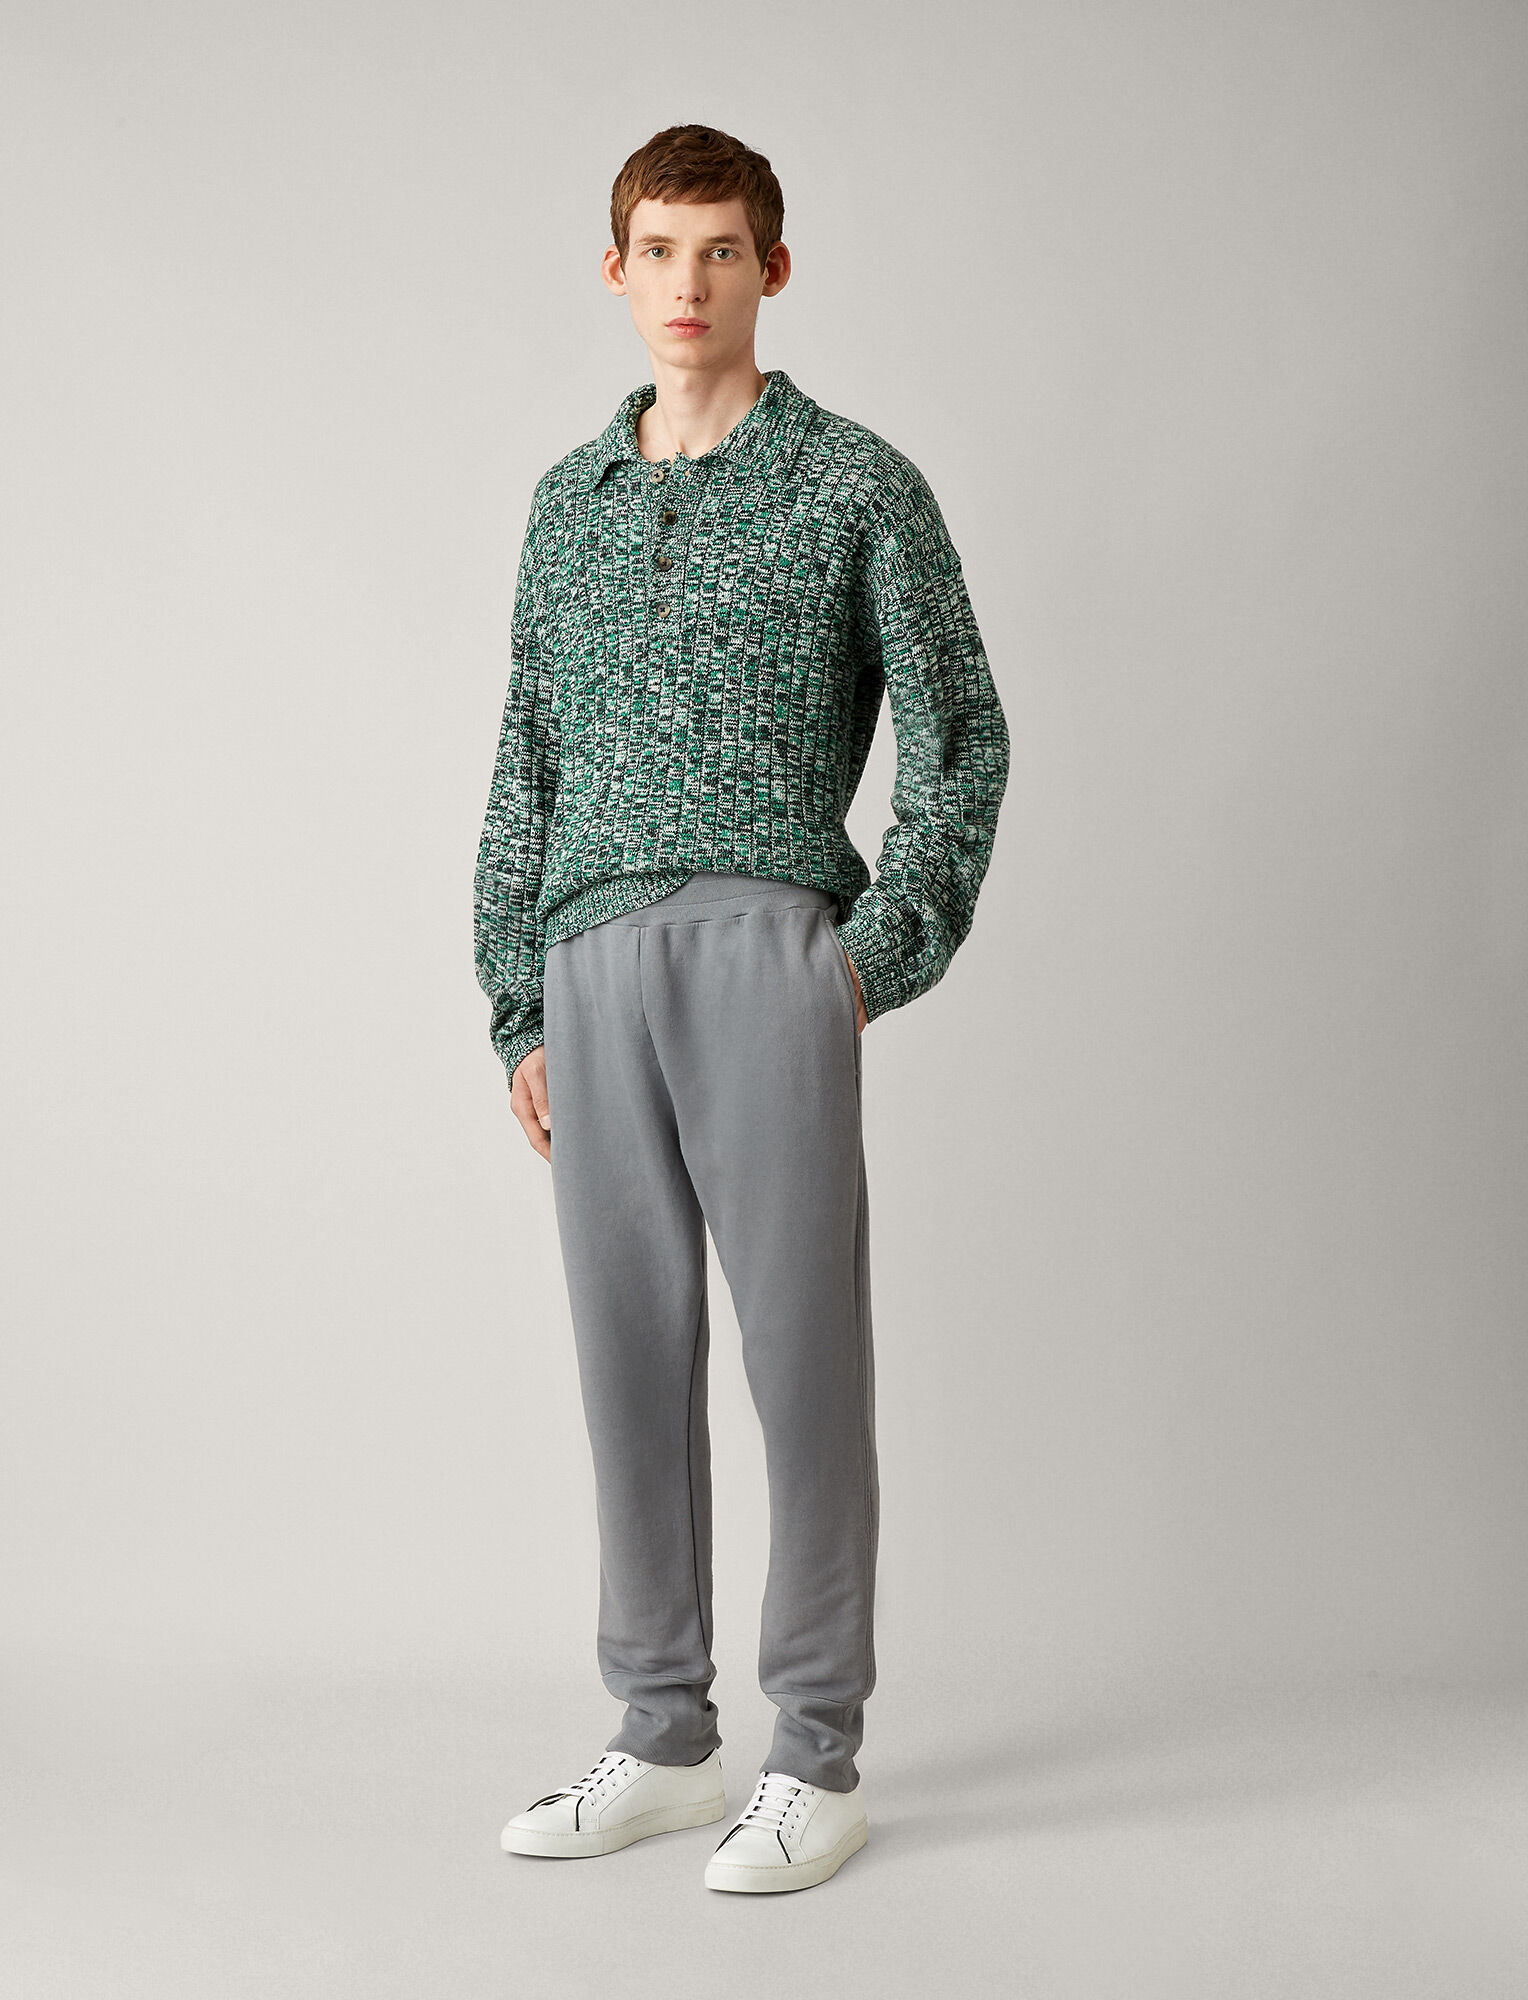 Joseph, Jogger Garment Dye Molleton Trousers, in STEEL